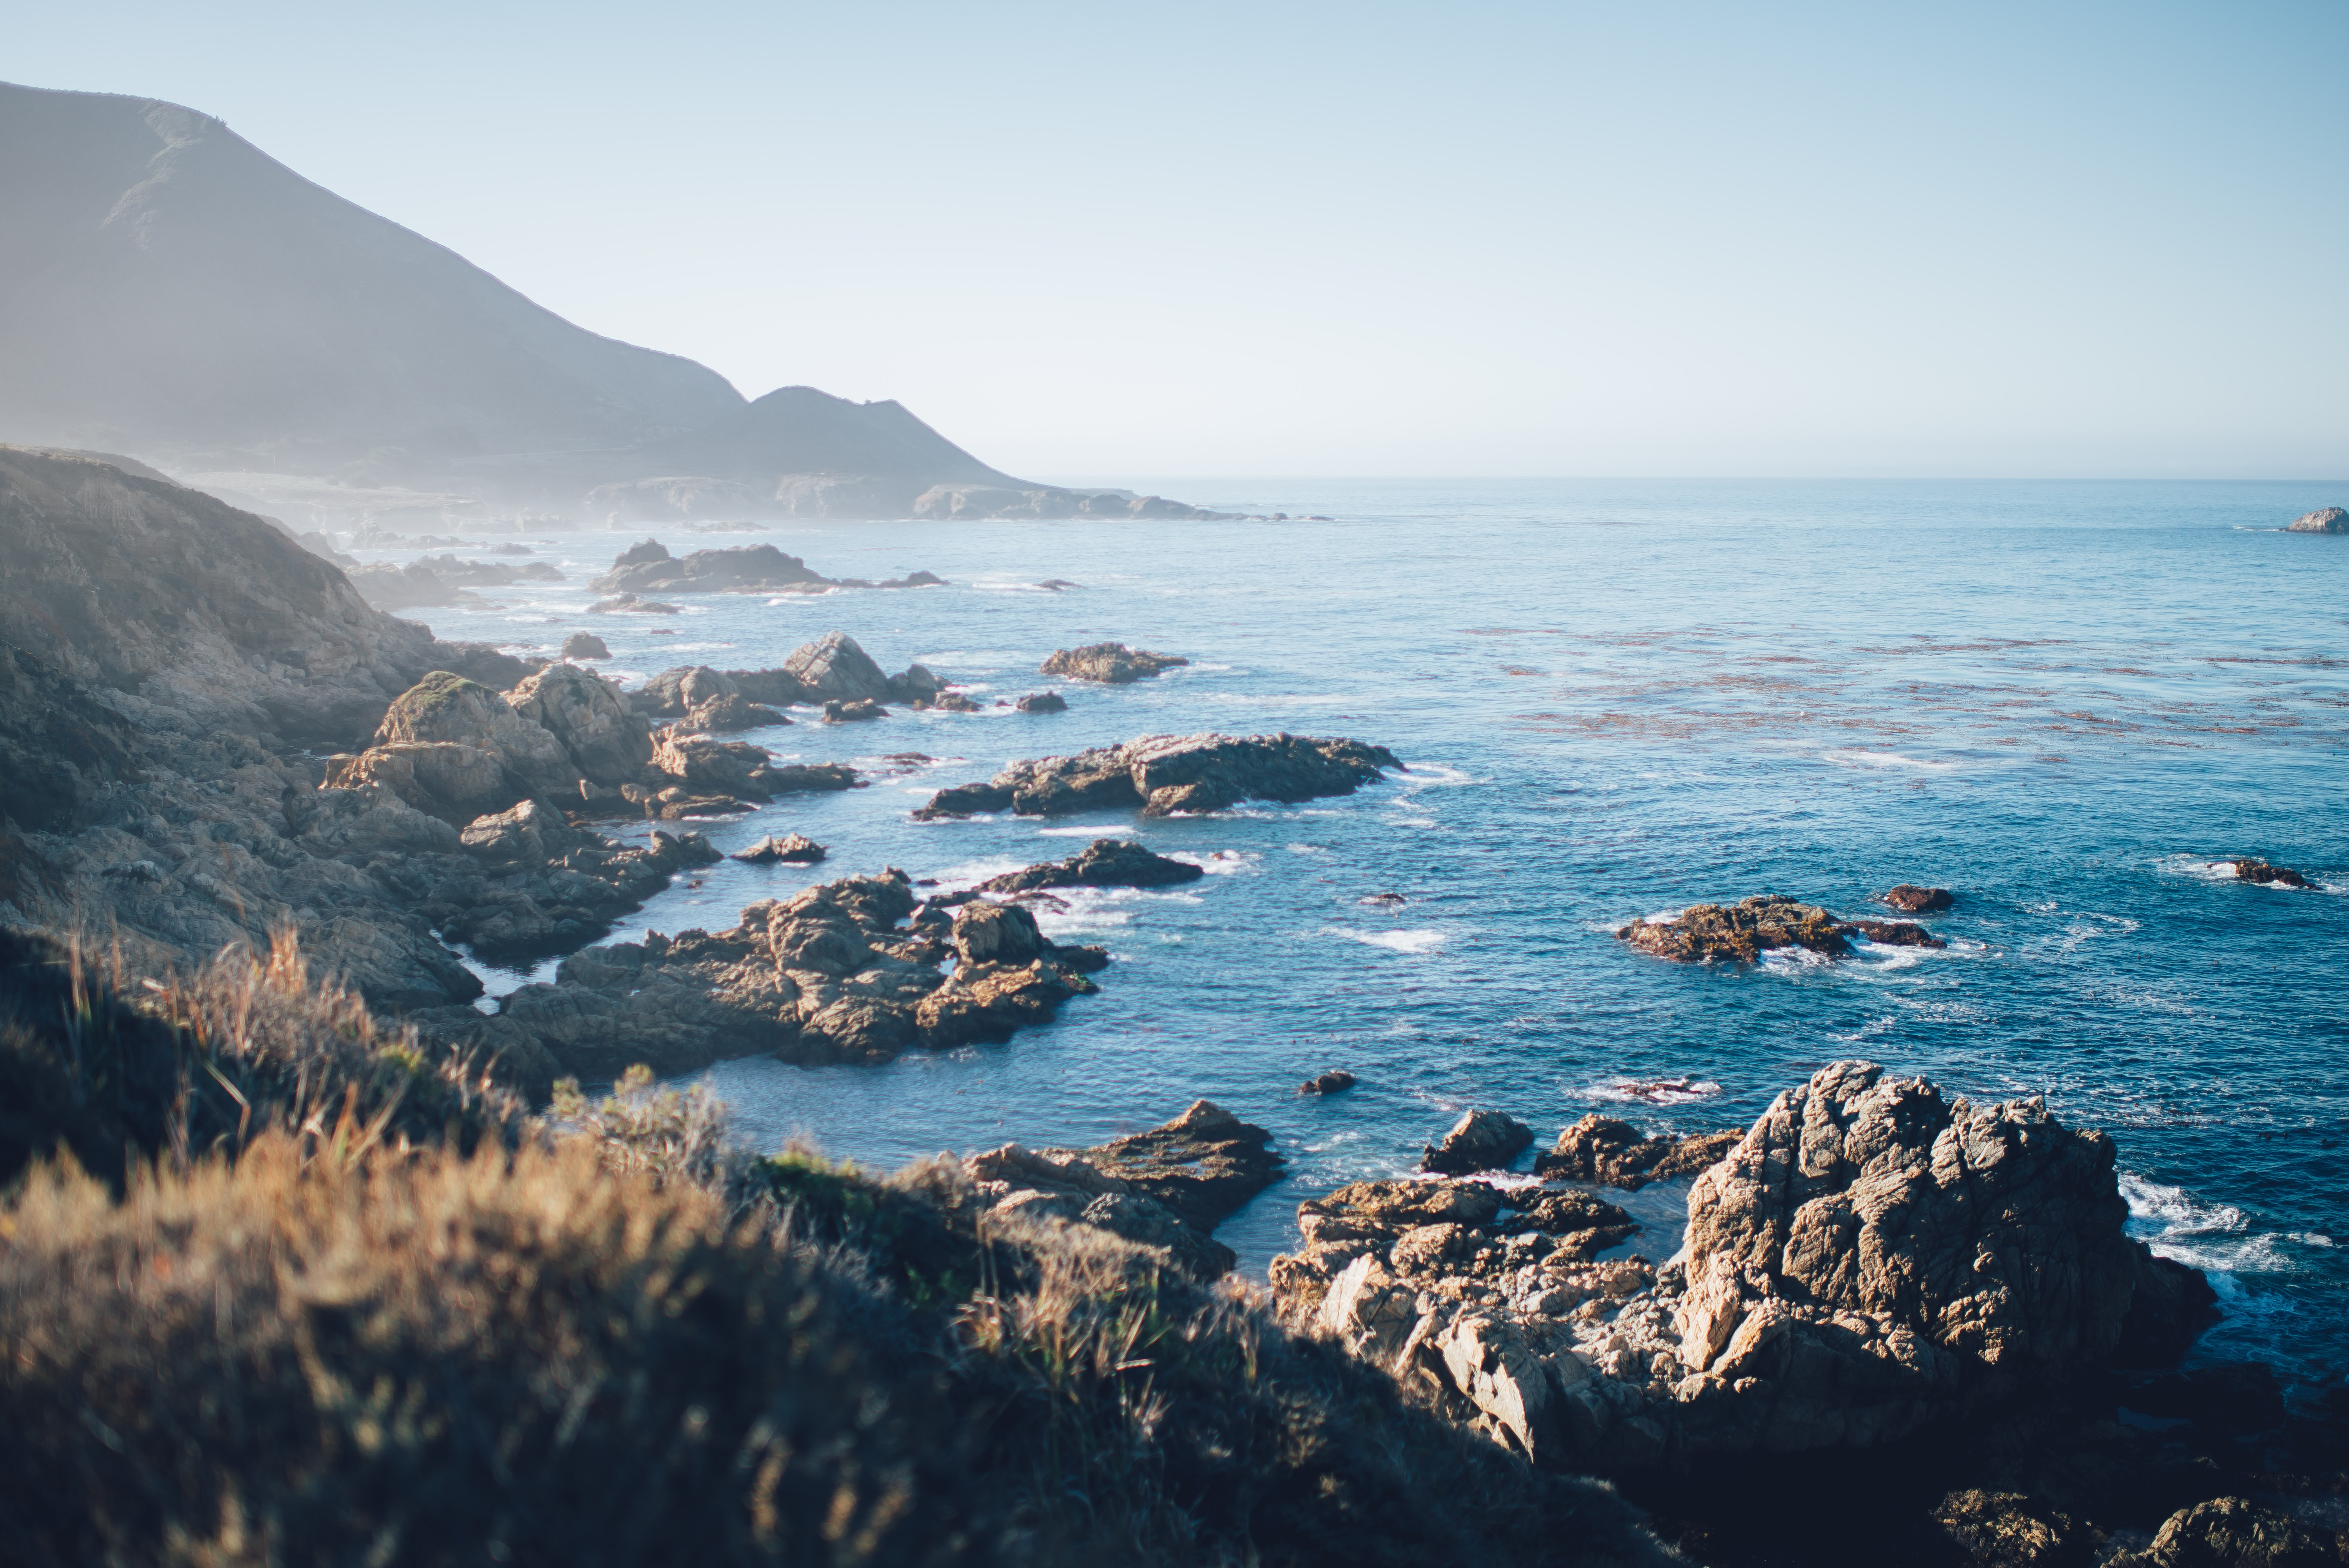 A rocky coastline, with mountains in the background overlooking the blue sea at Bixby Creek Bridge